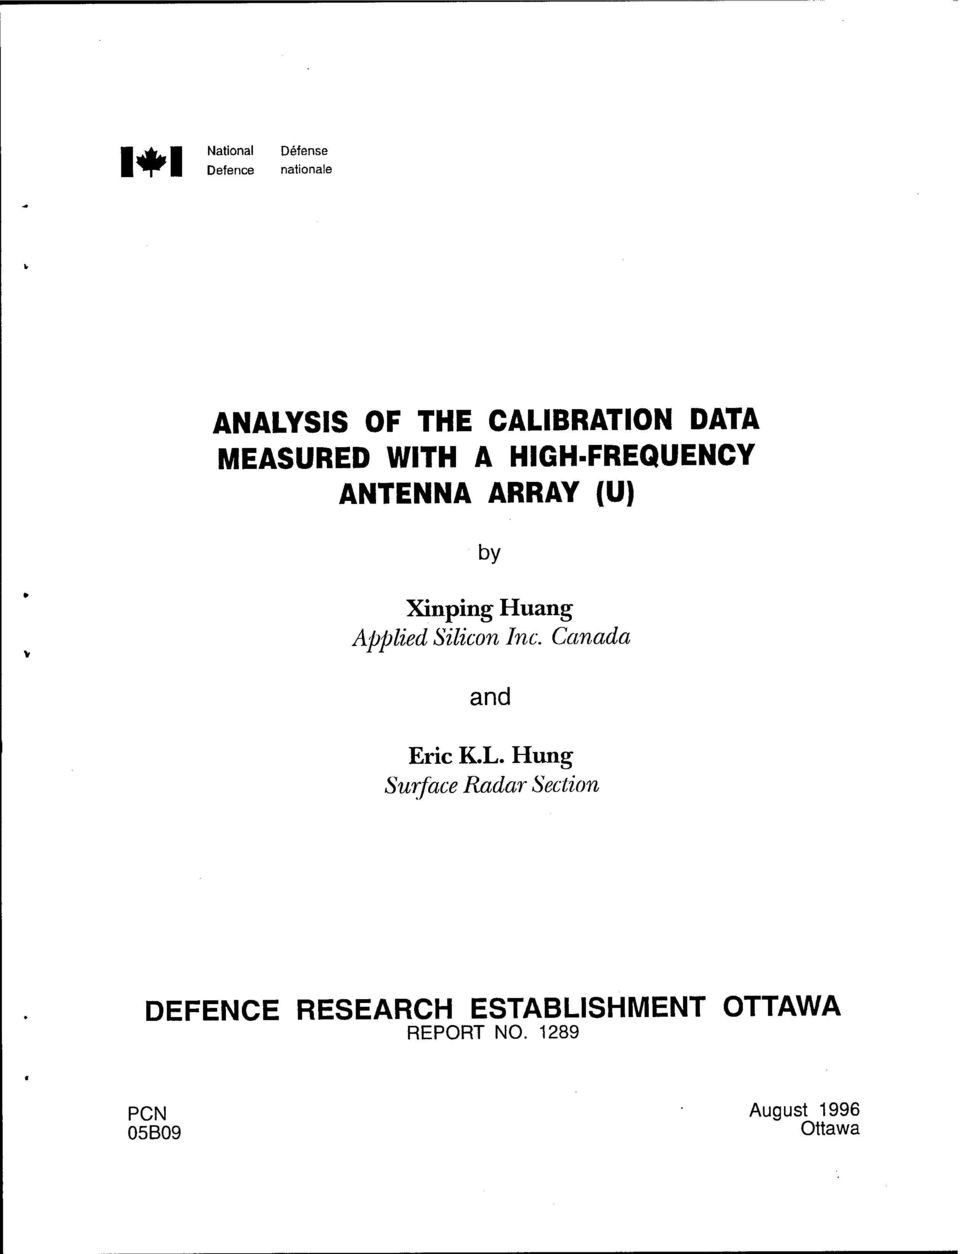 ANALYSIS OF THE CALIBRATION DATA MEASURED WITH A HIGH-FREQUENCY